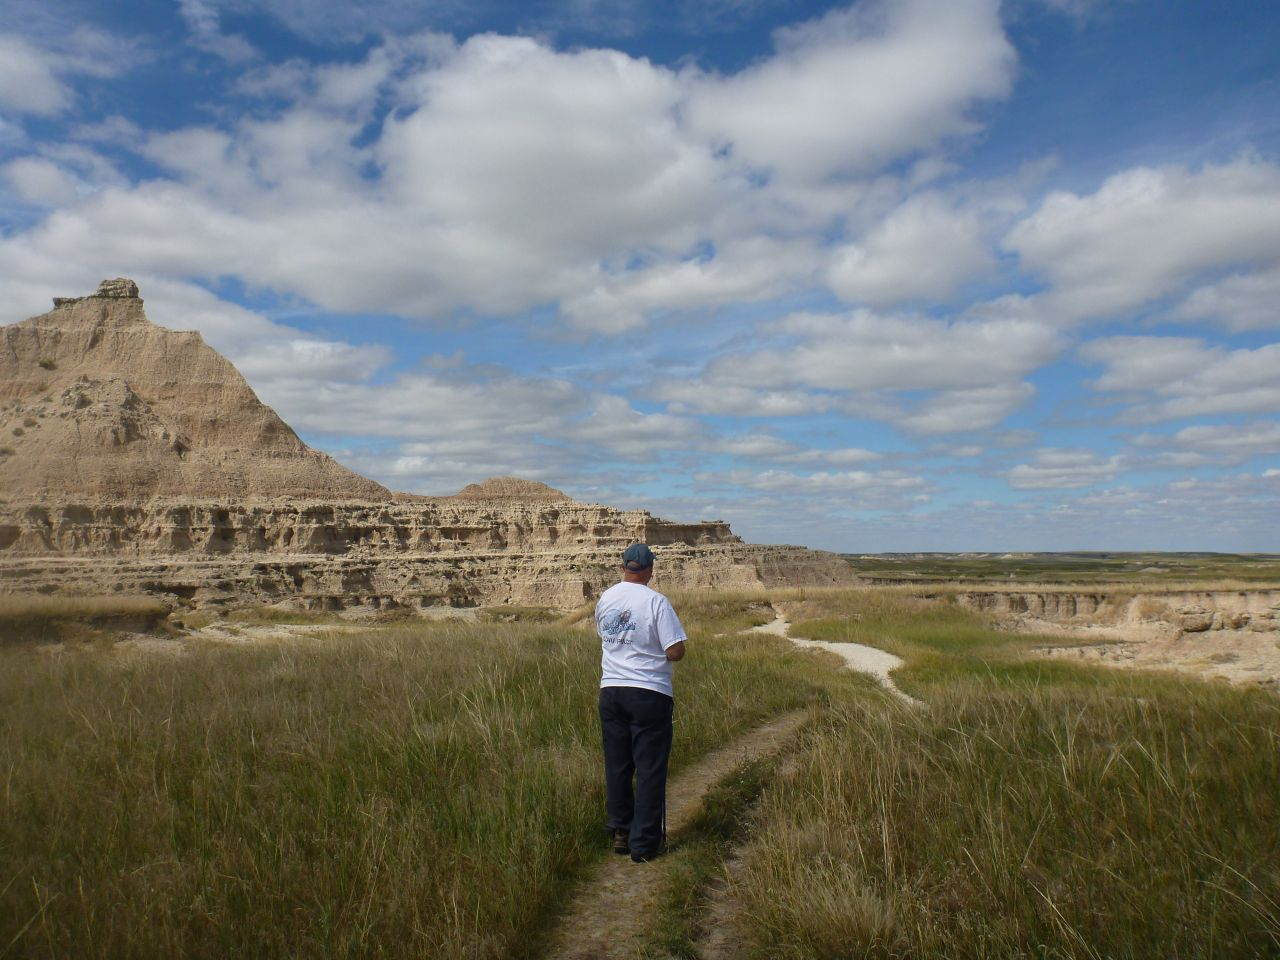 Hiking A Trail In The Badlands